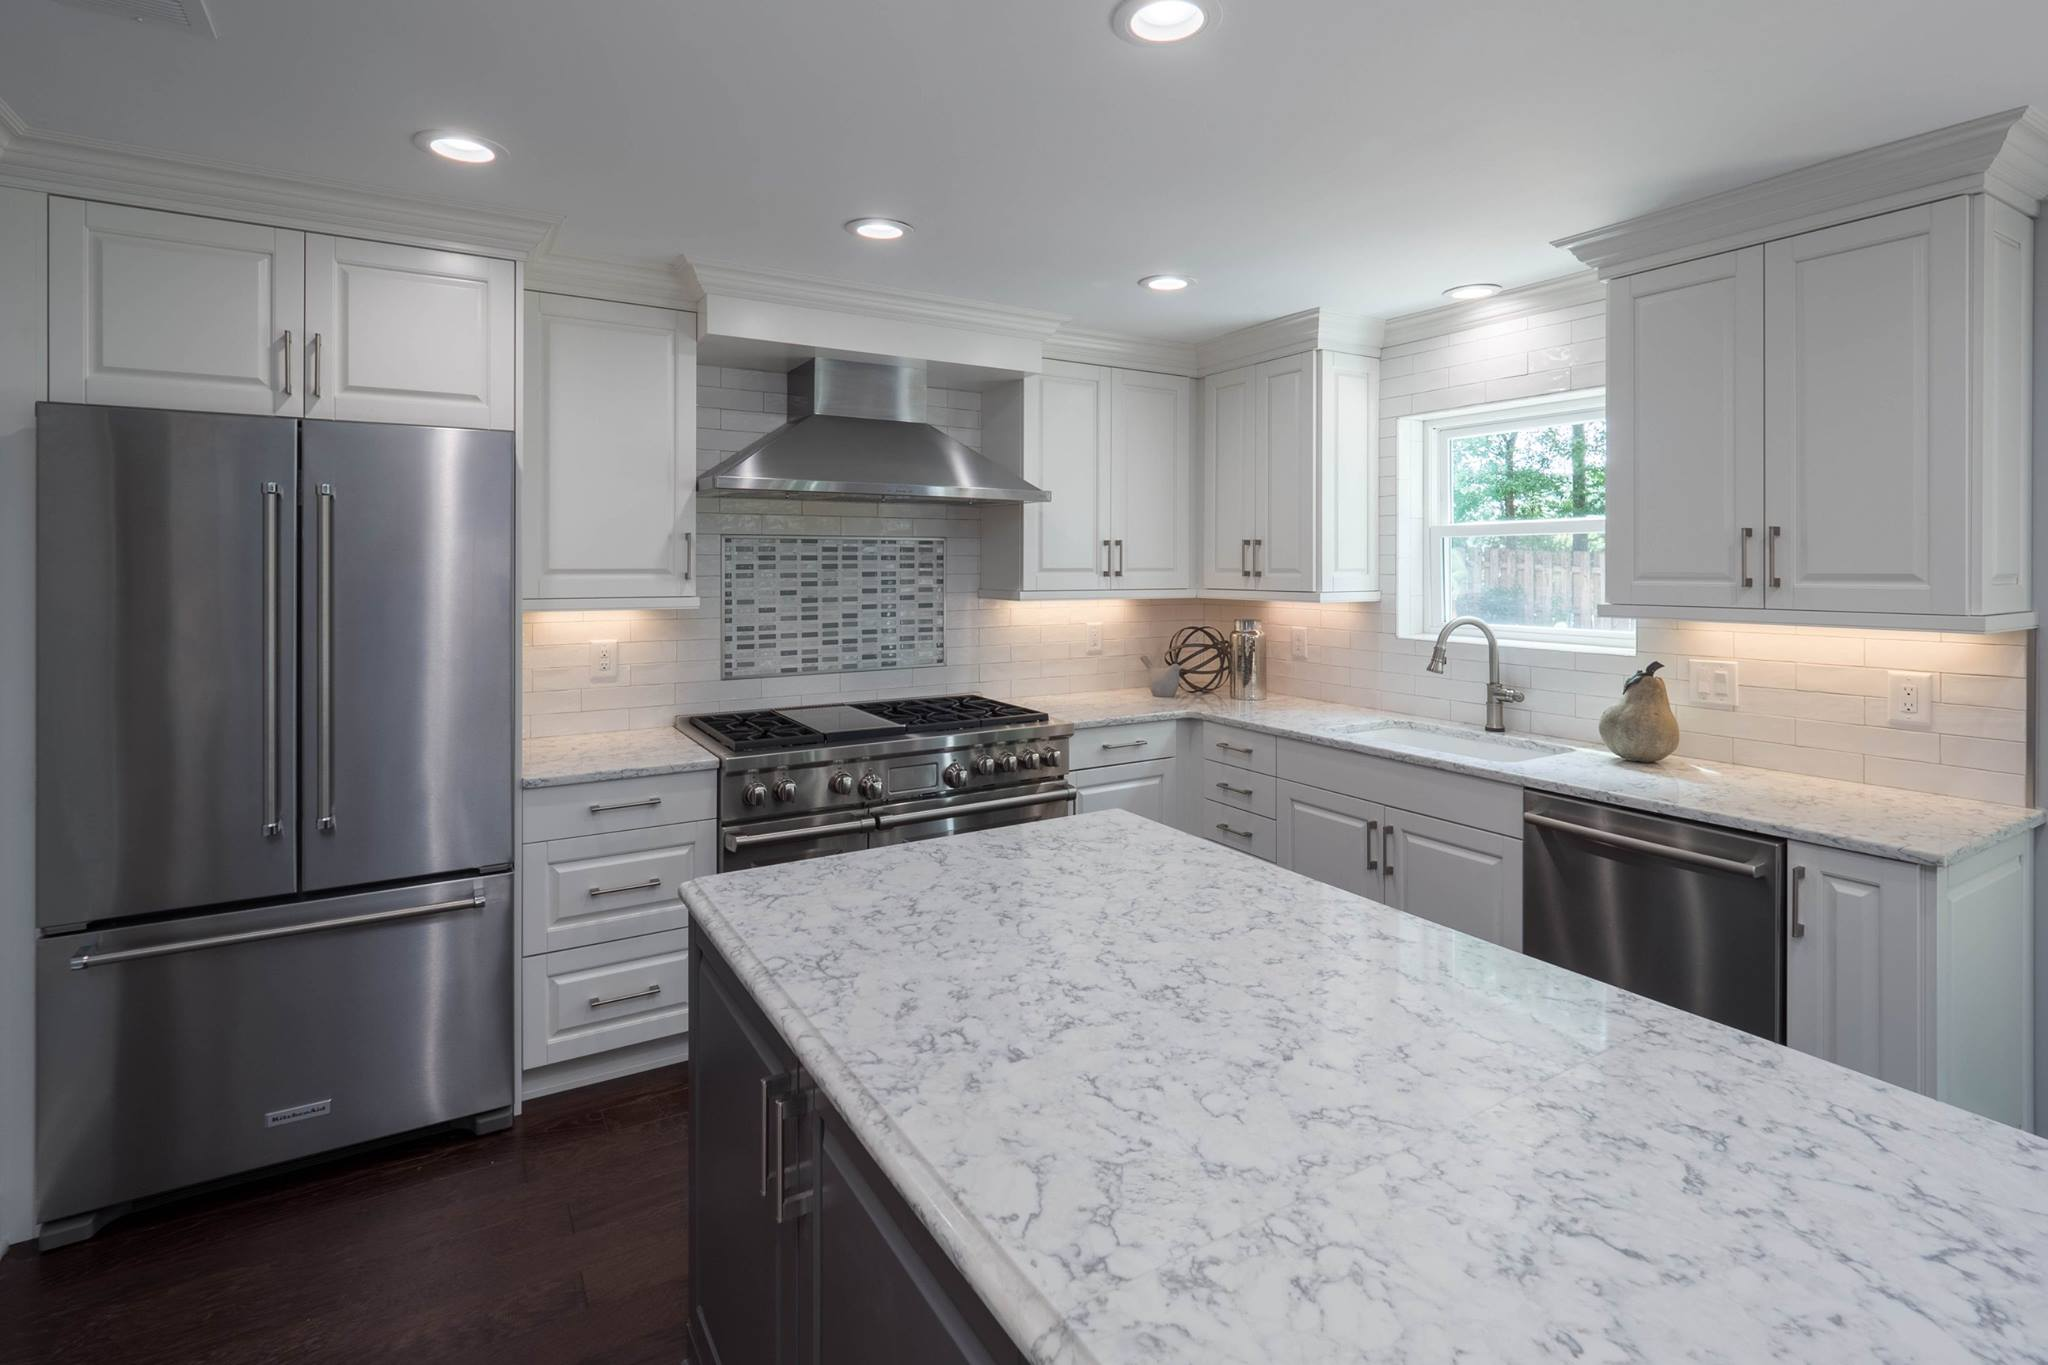 Contemporary White & Gray Kitchen - Cheryl Pett Design